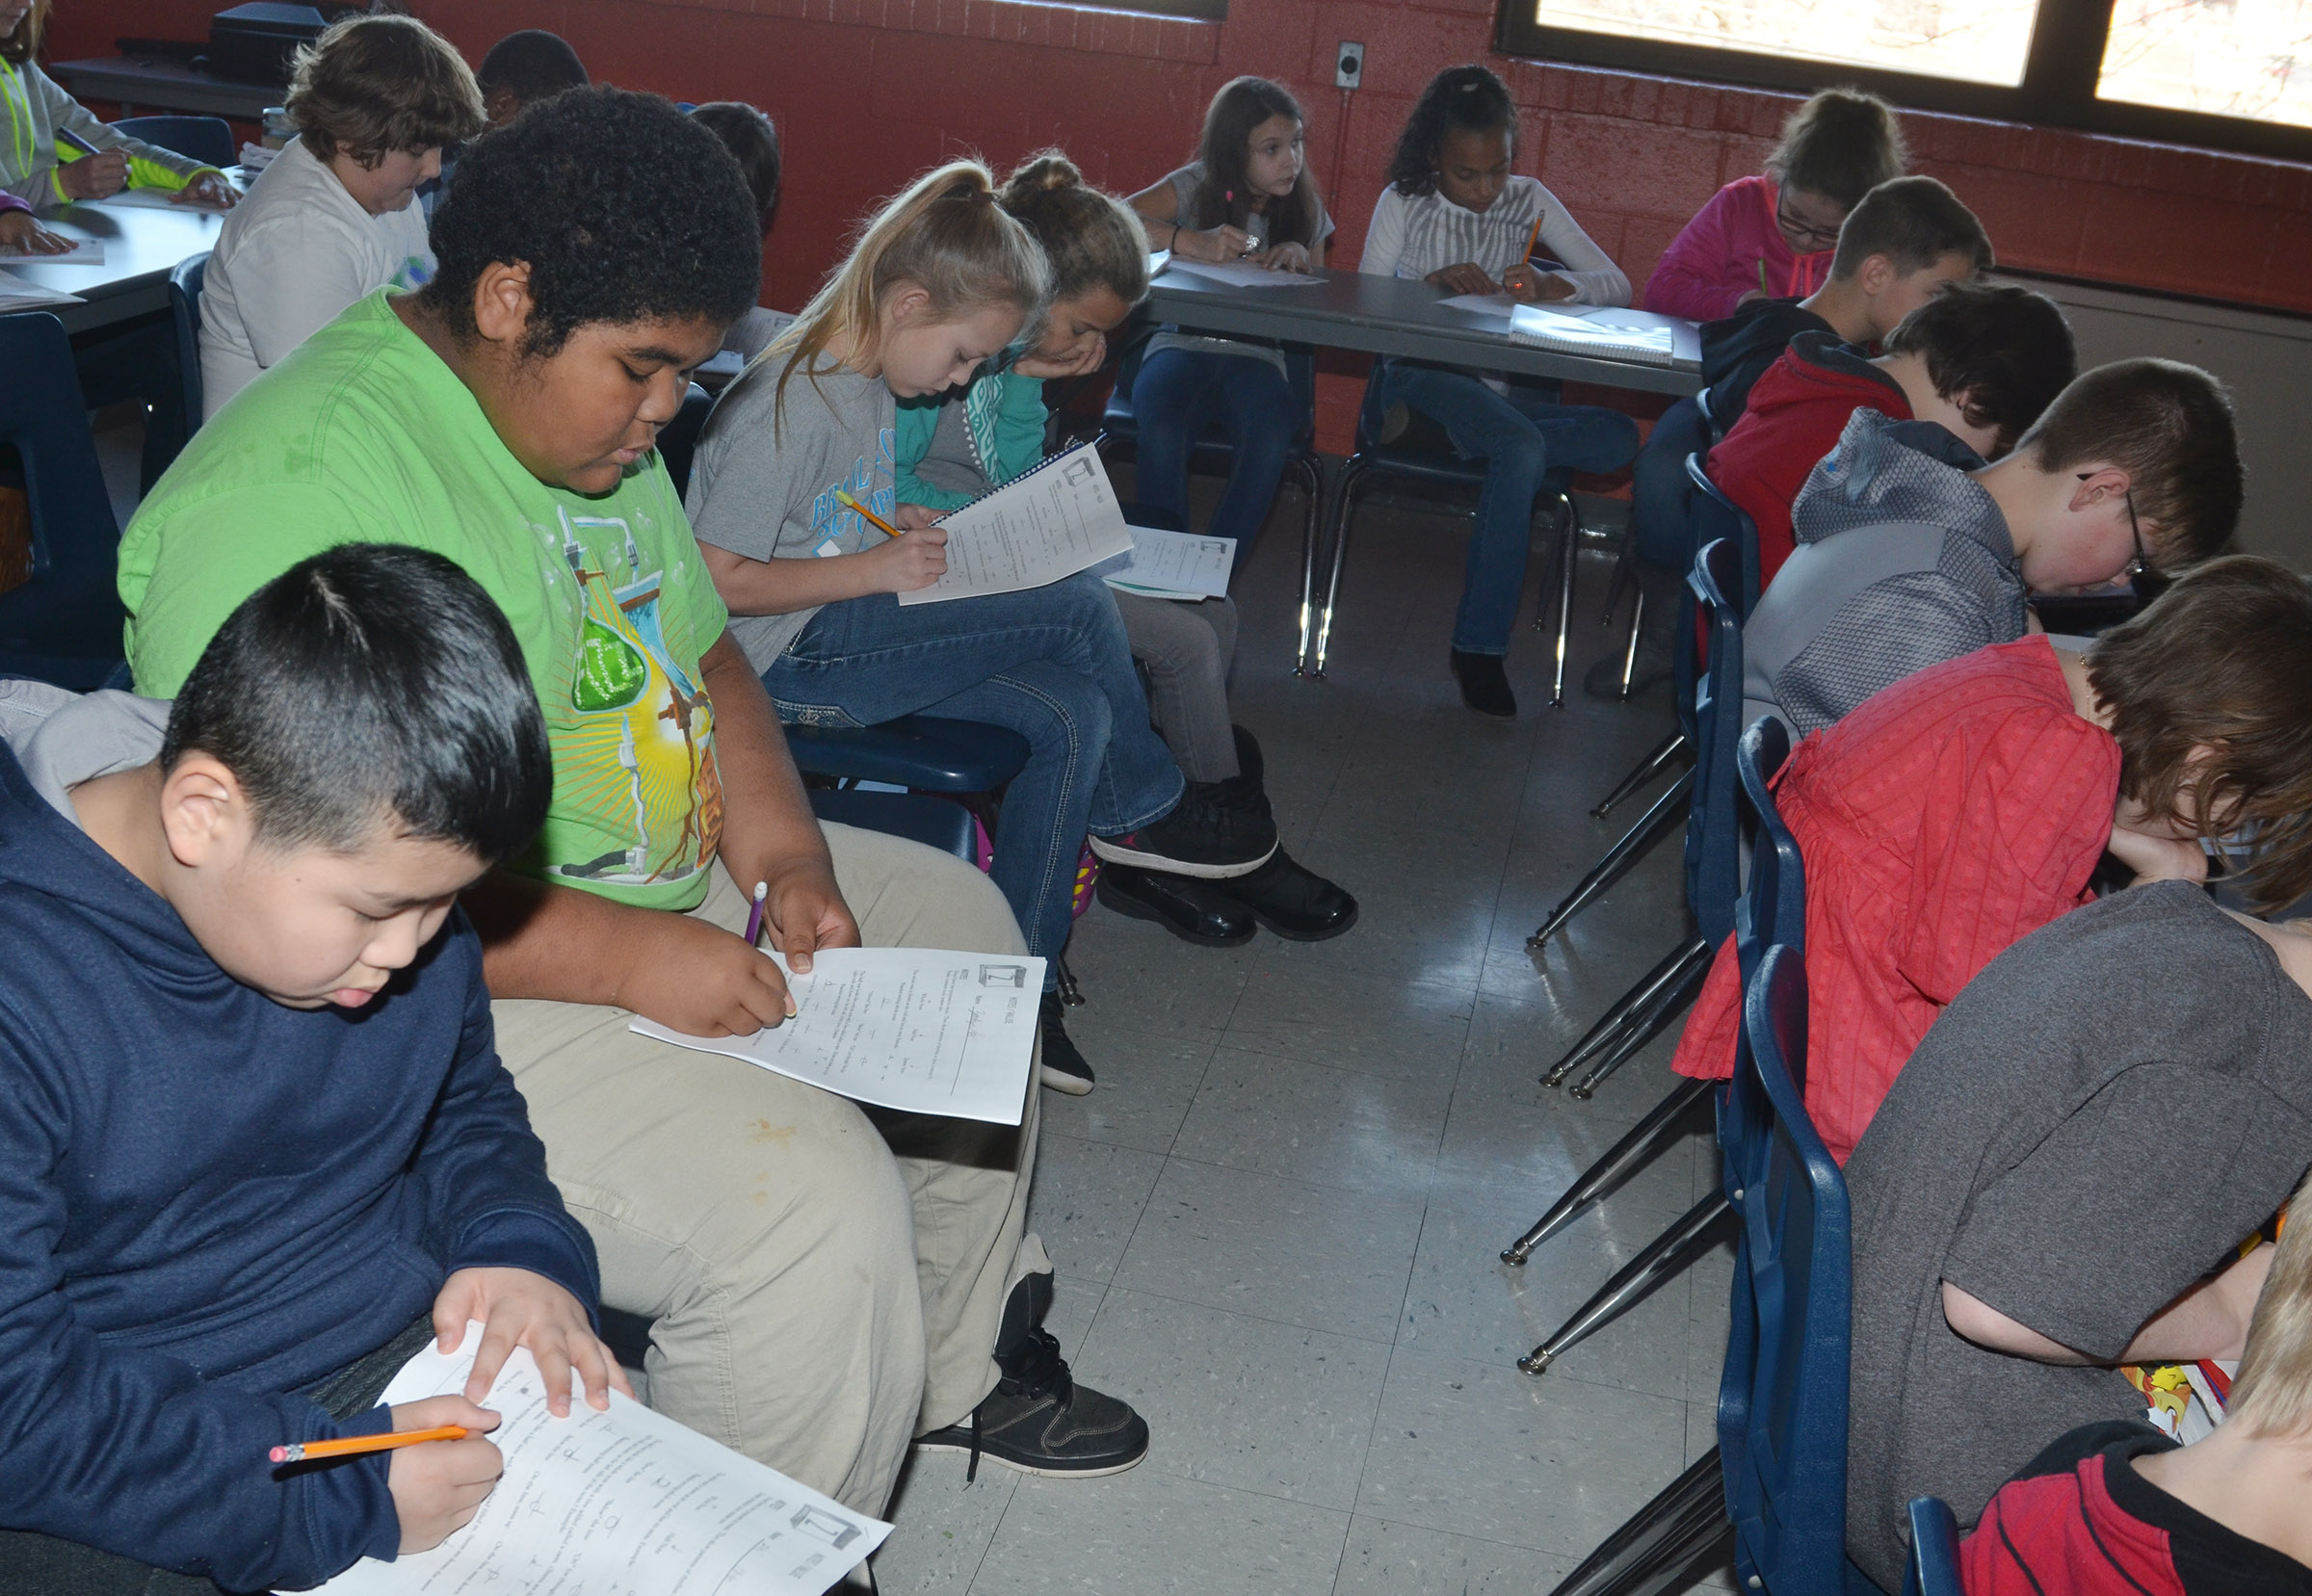 CMS fourth-graders Zhi Chen, at left, Zaedyn Branch and their classmates practice writing musical notes.